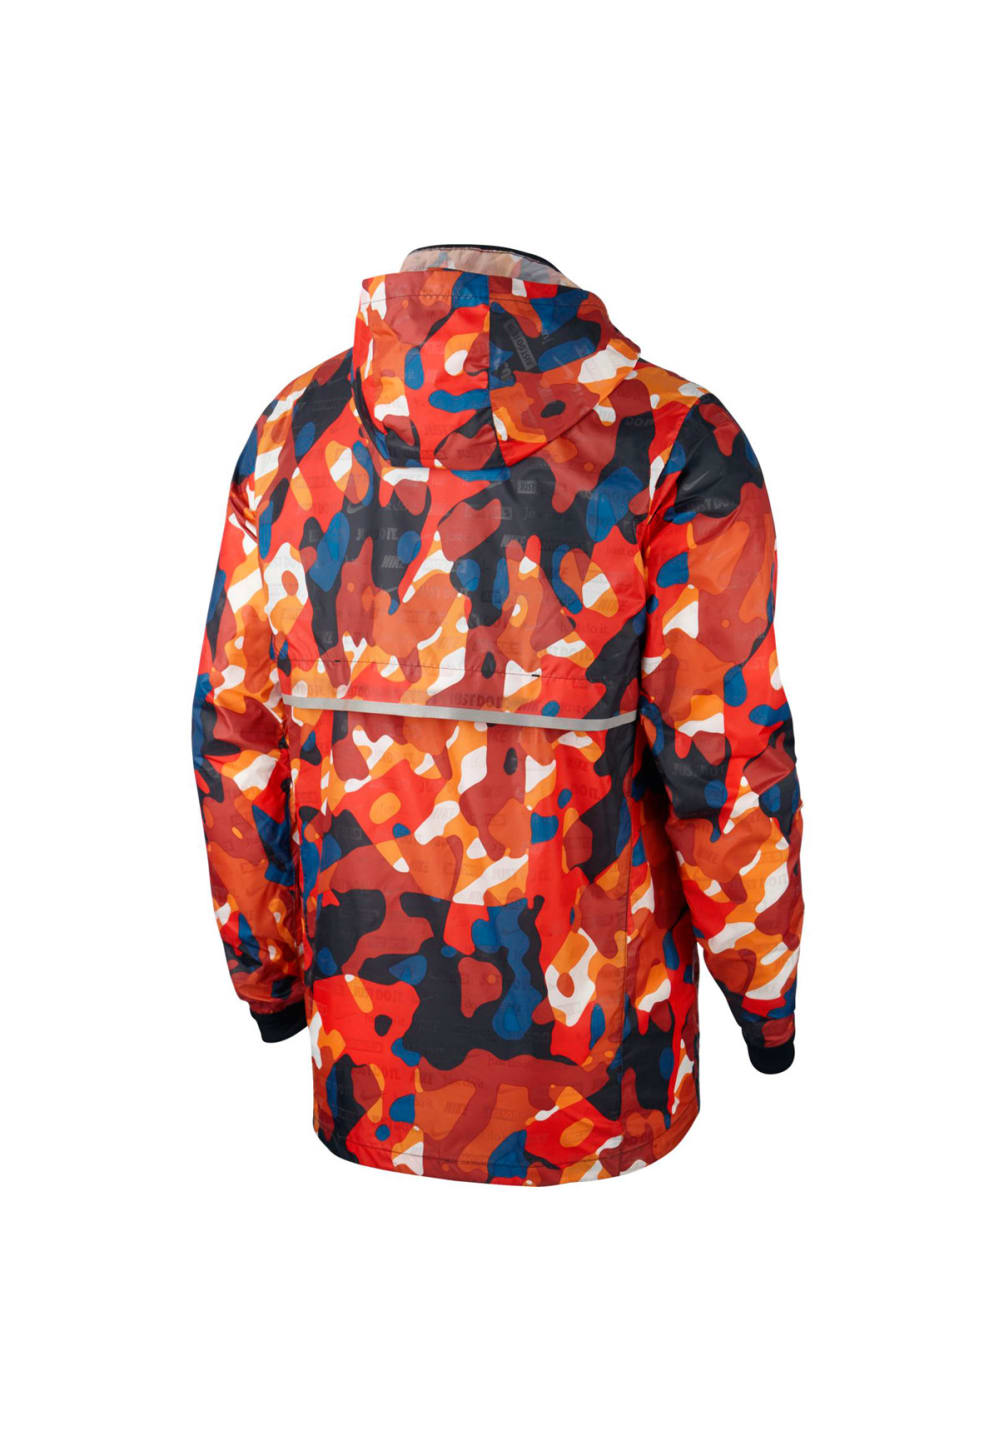 outlet store abad1 926f6 Next. Nike. Shield Ghost Flash Running Jacket - Running jackets ...